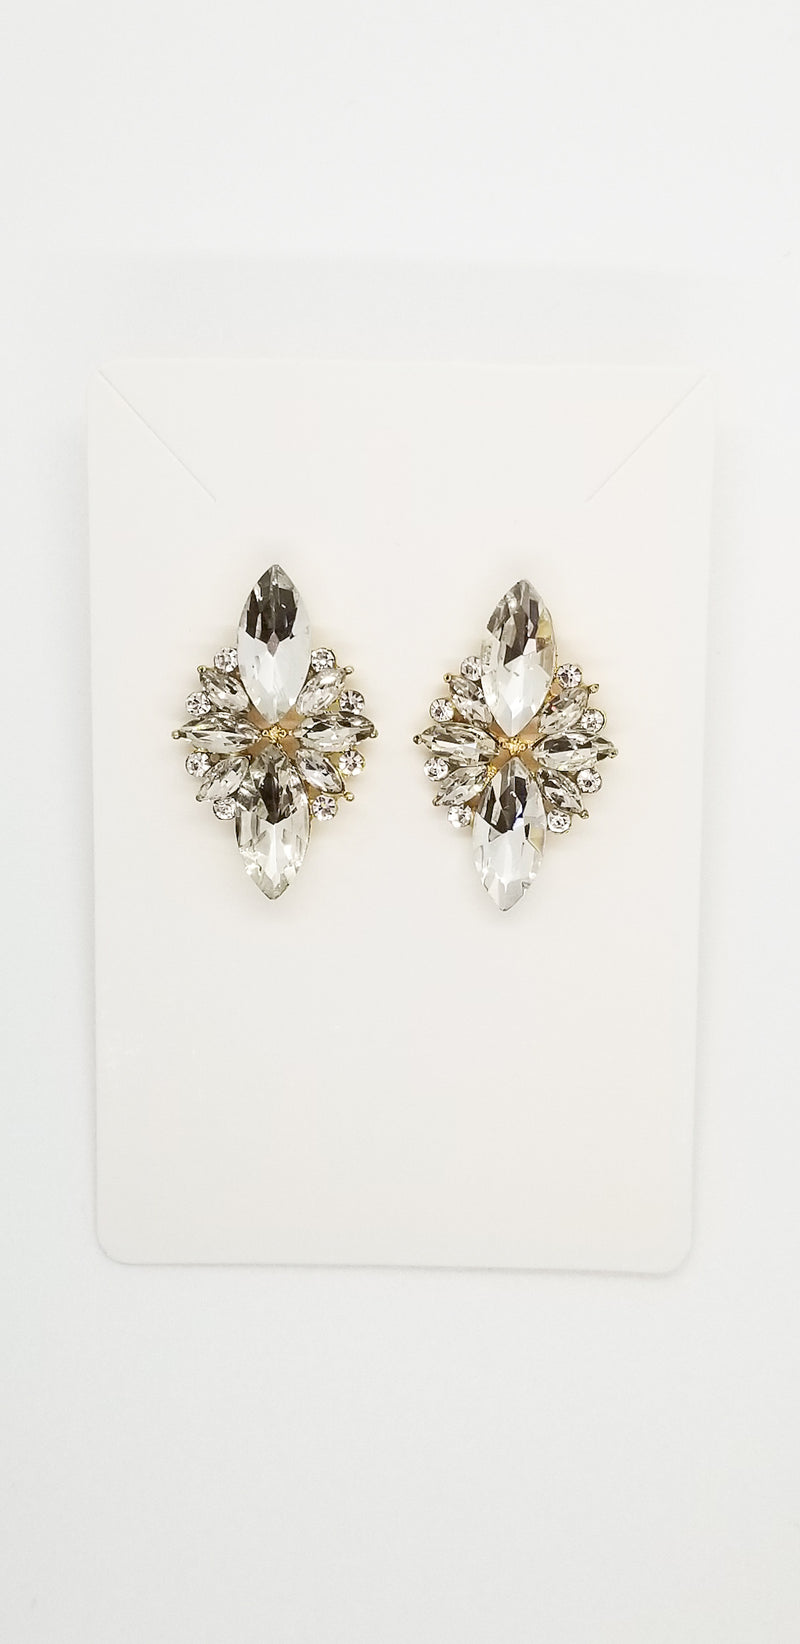 Spade Earrings - Clear - OWN YOUR ELEGANCE